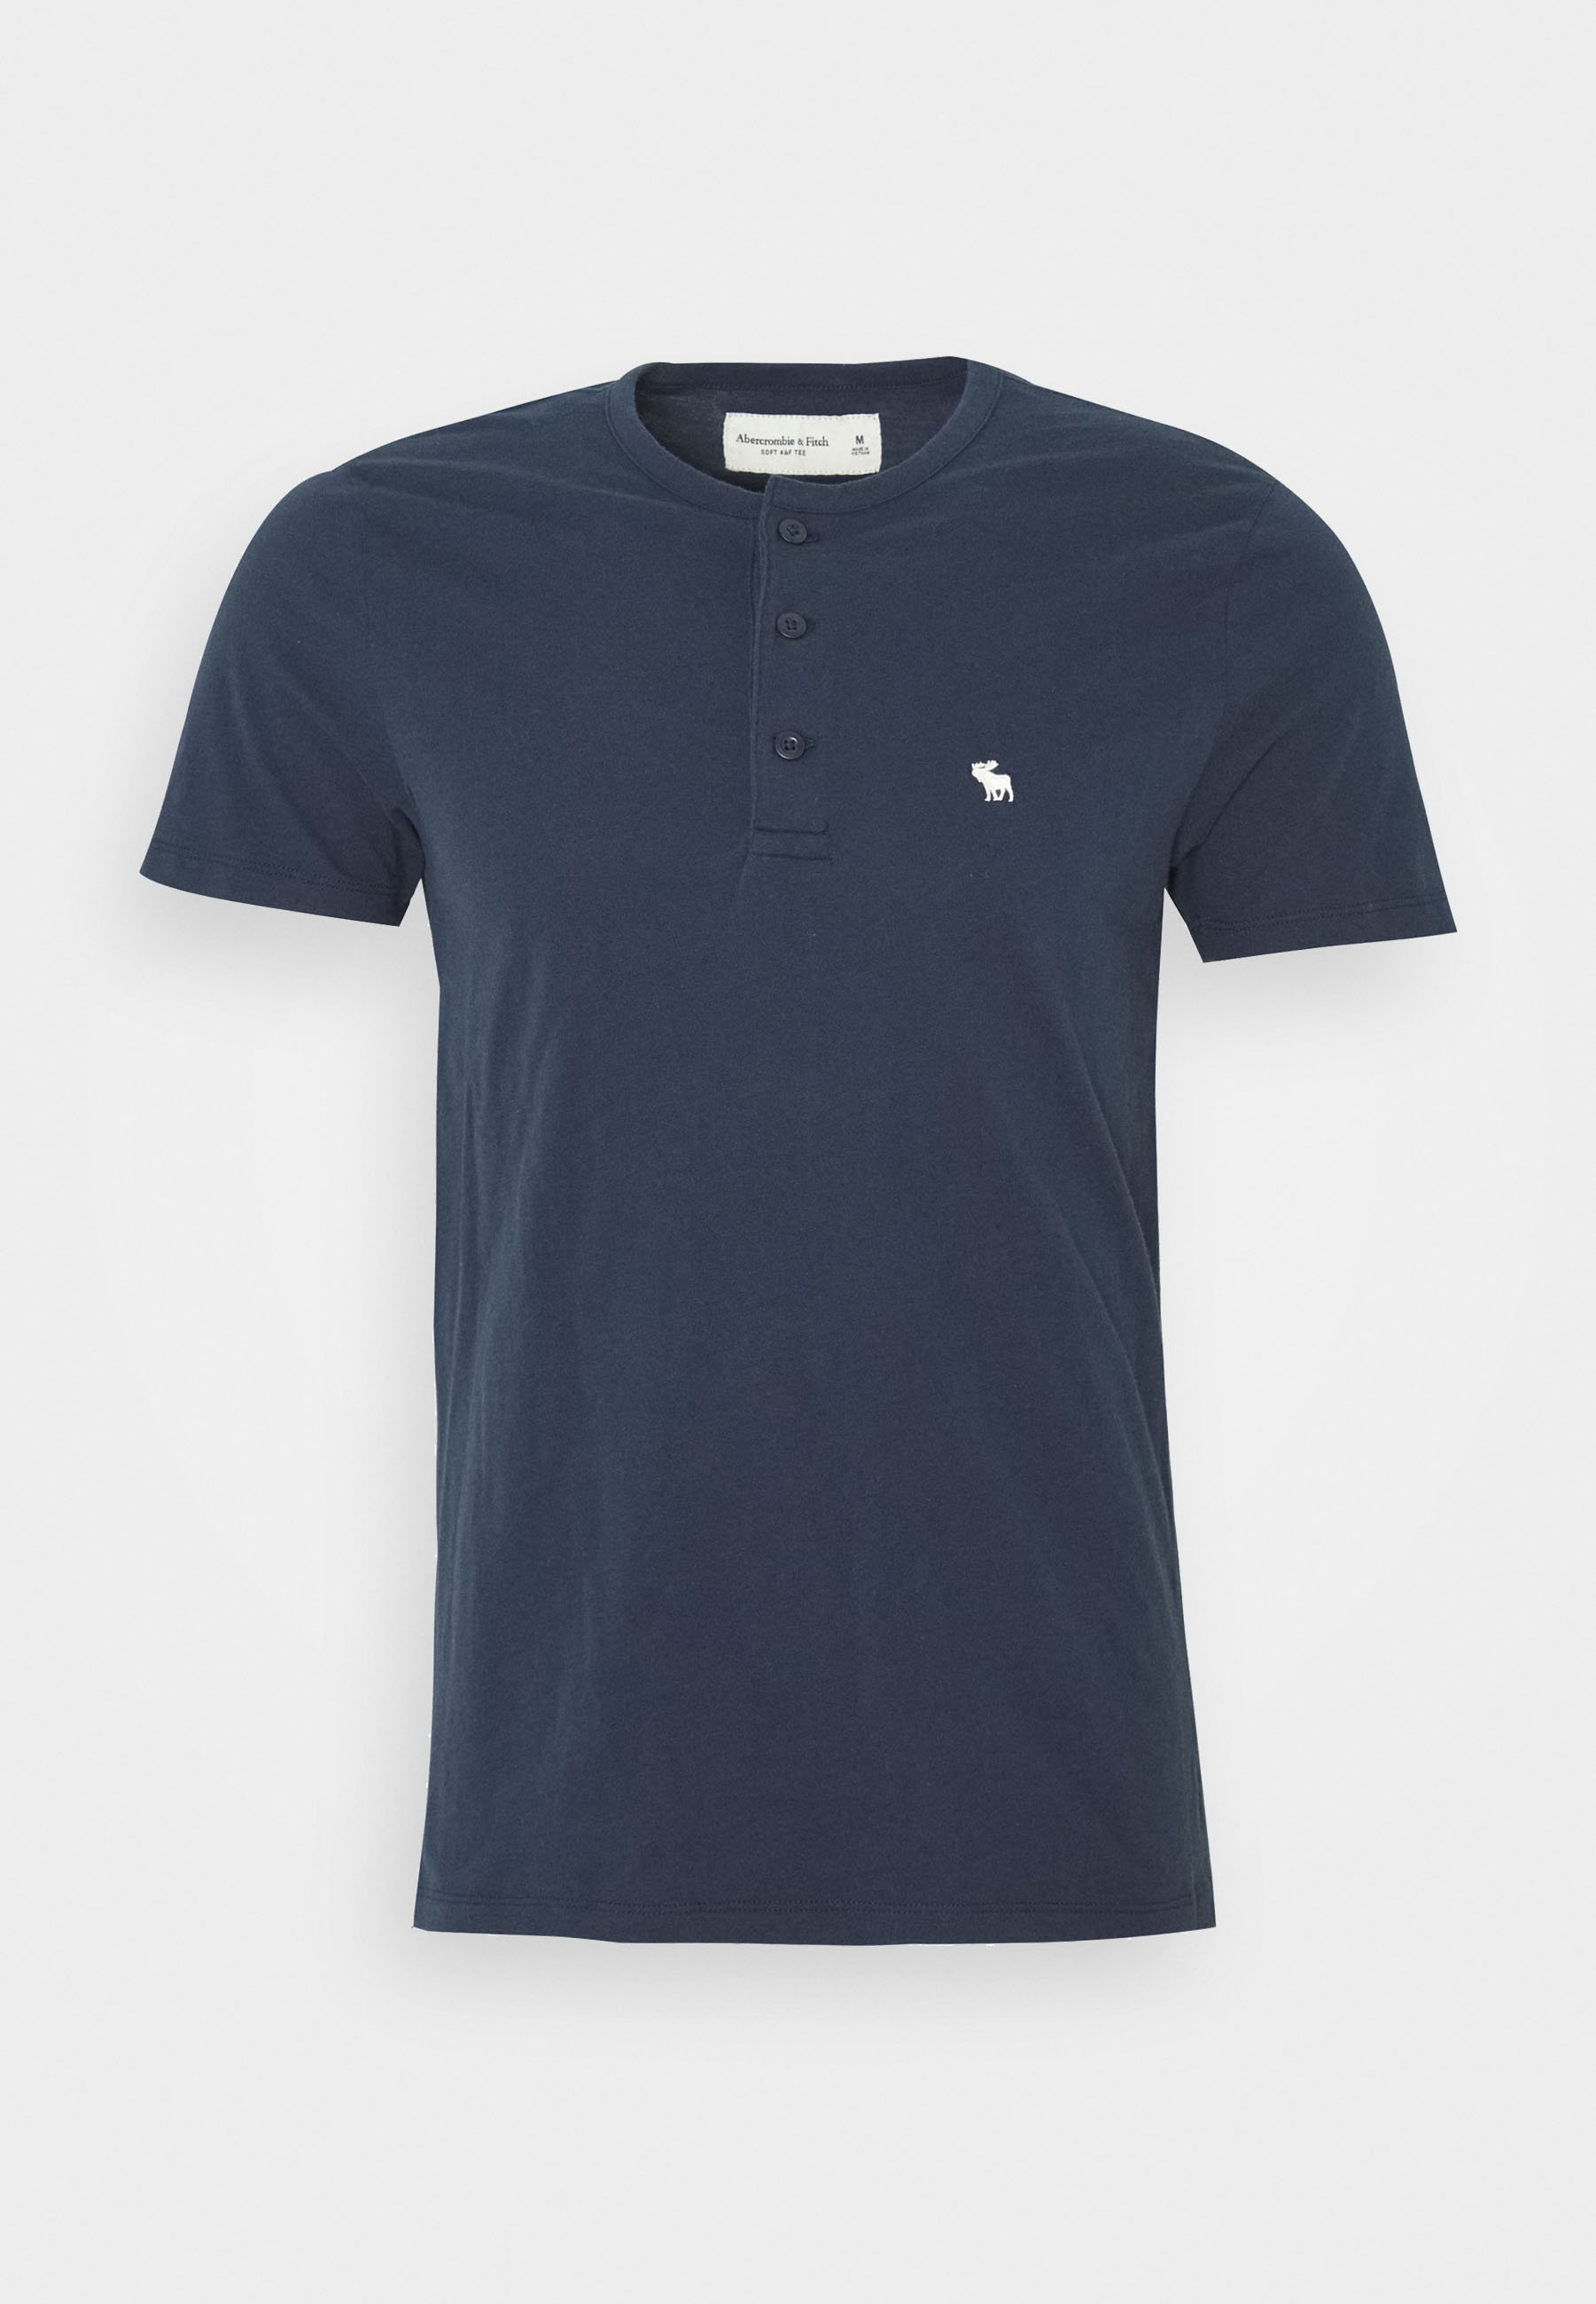 Abercrombie & Fitch Icon - T-shirt Basic Navy